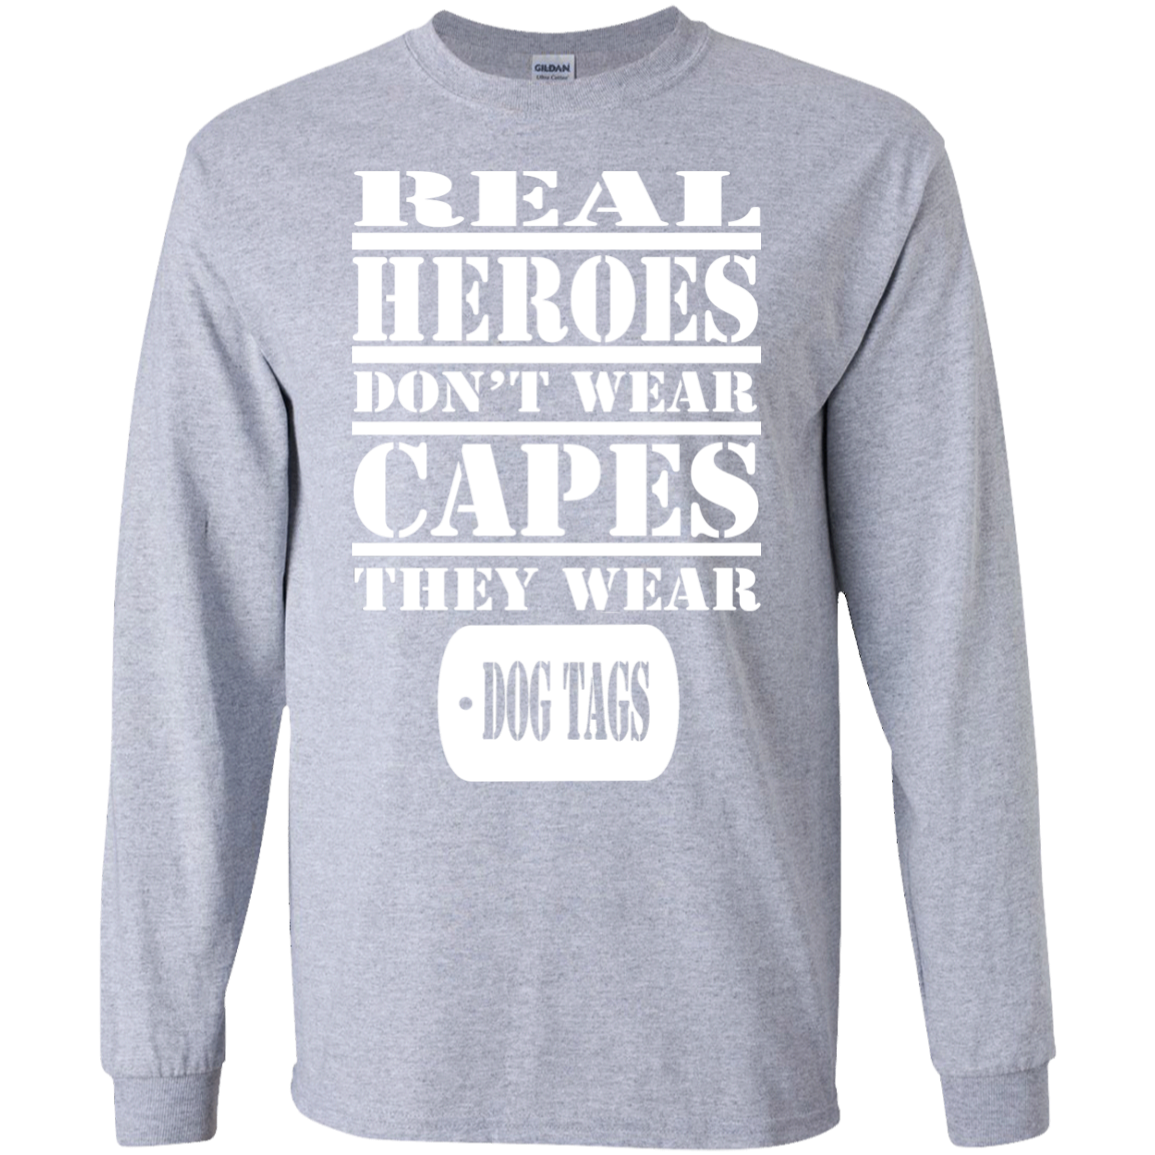 Real Heros Dont Wear Capes They Wear Dog Tags Long Sleeve Tees